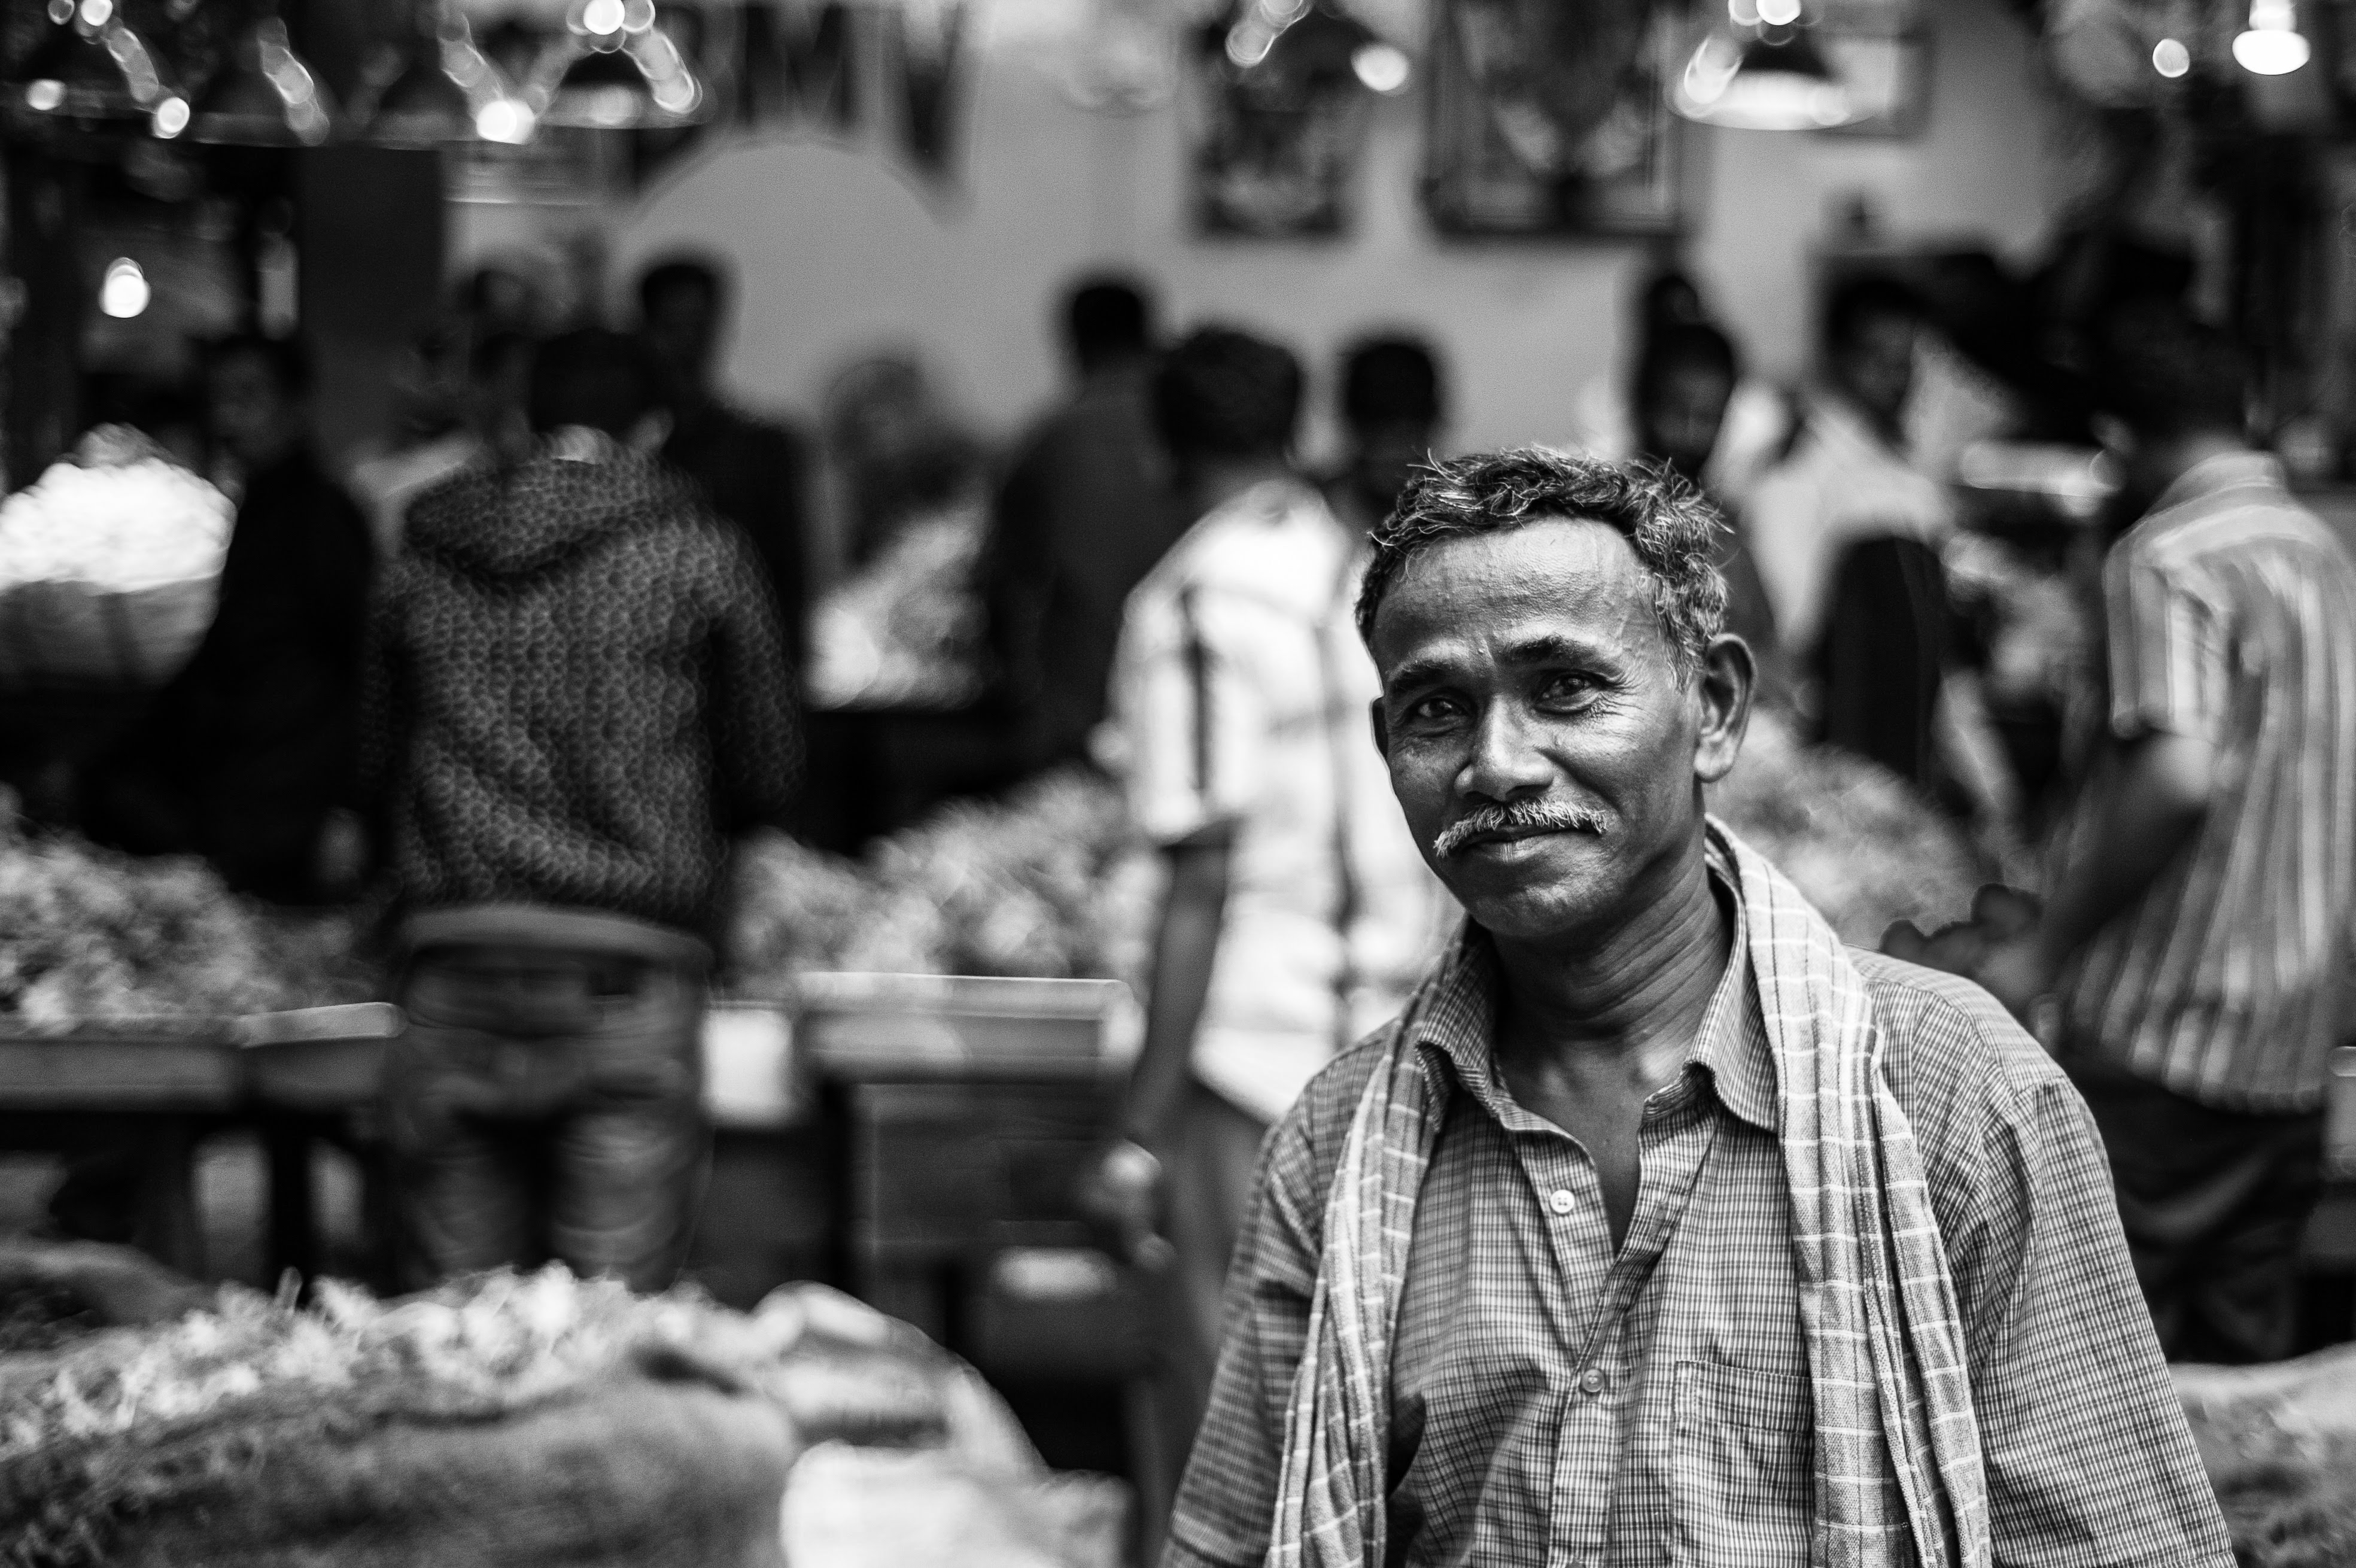 A black and white portrait of a manual labourer taking a break.